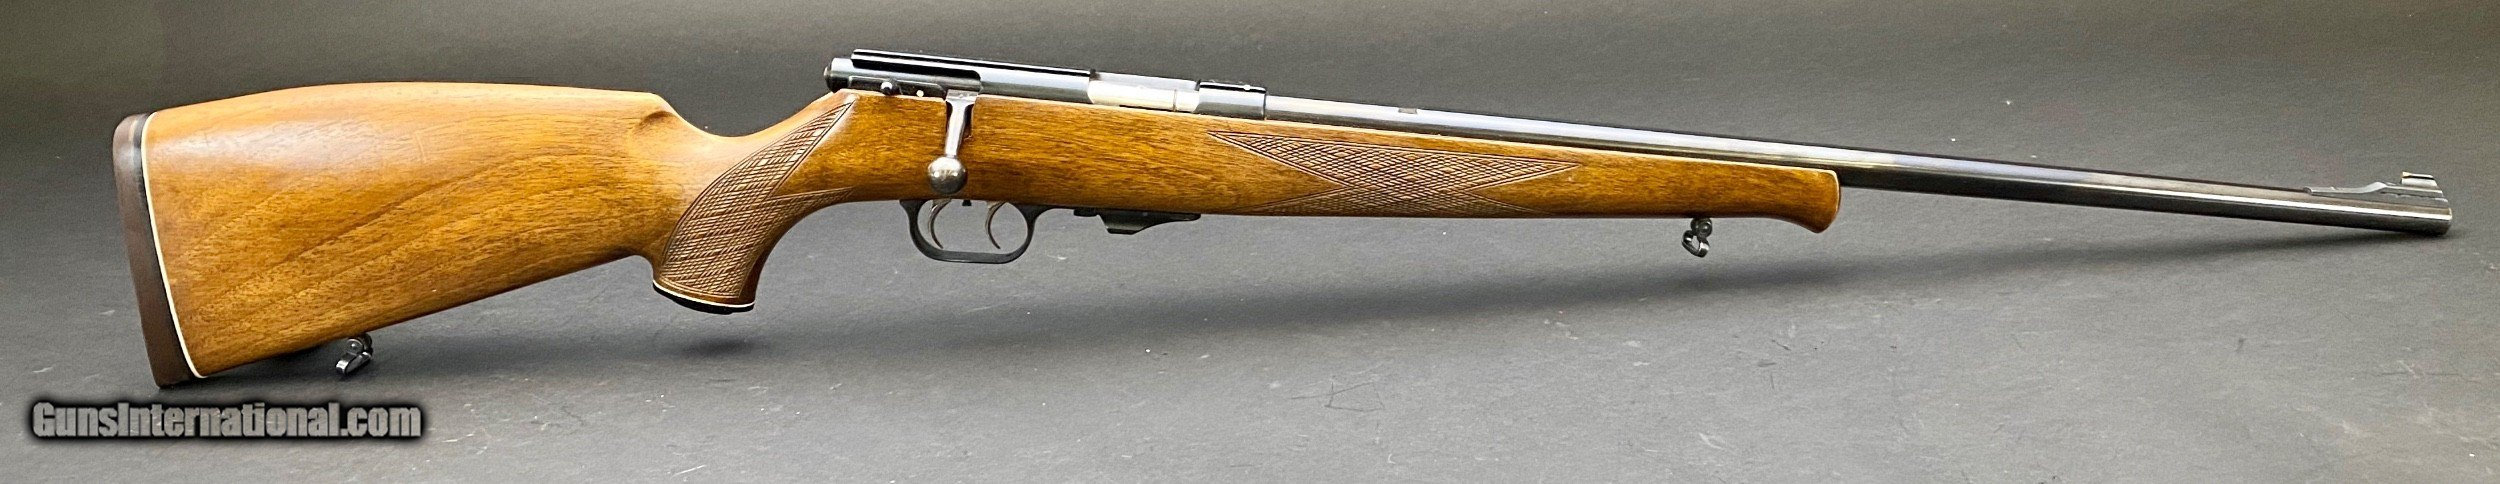 Weihrauch Möbel Weihrauch Model Hw60j 22 Hornet Sporting Rifle Double Set ...